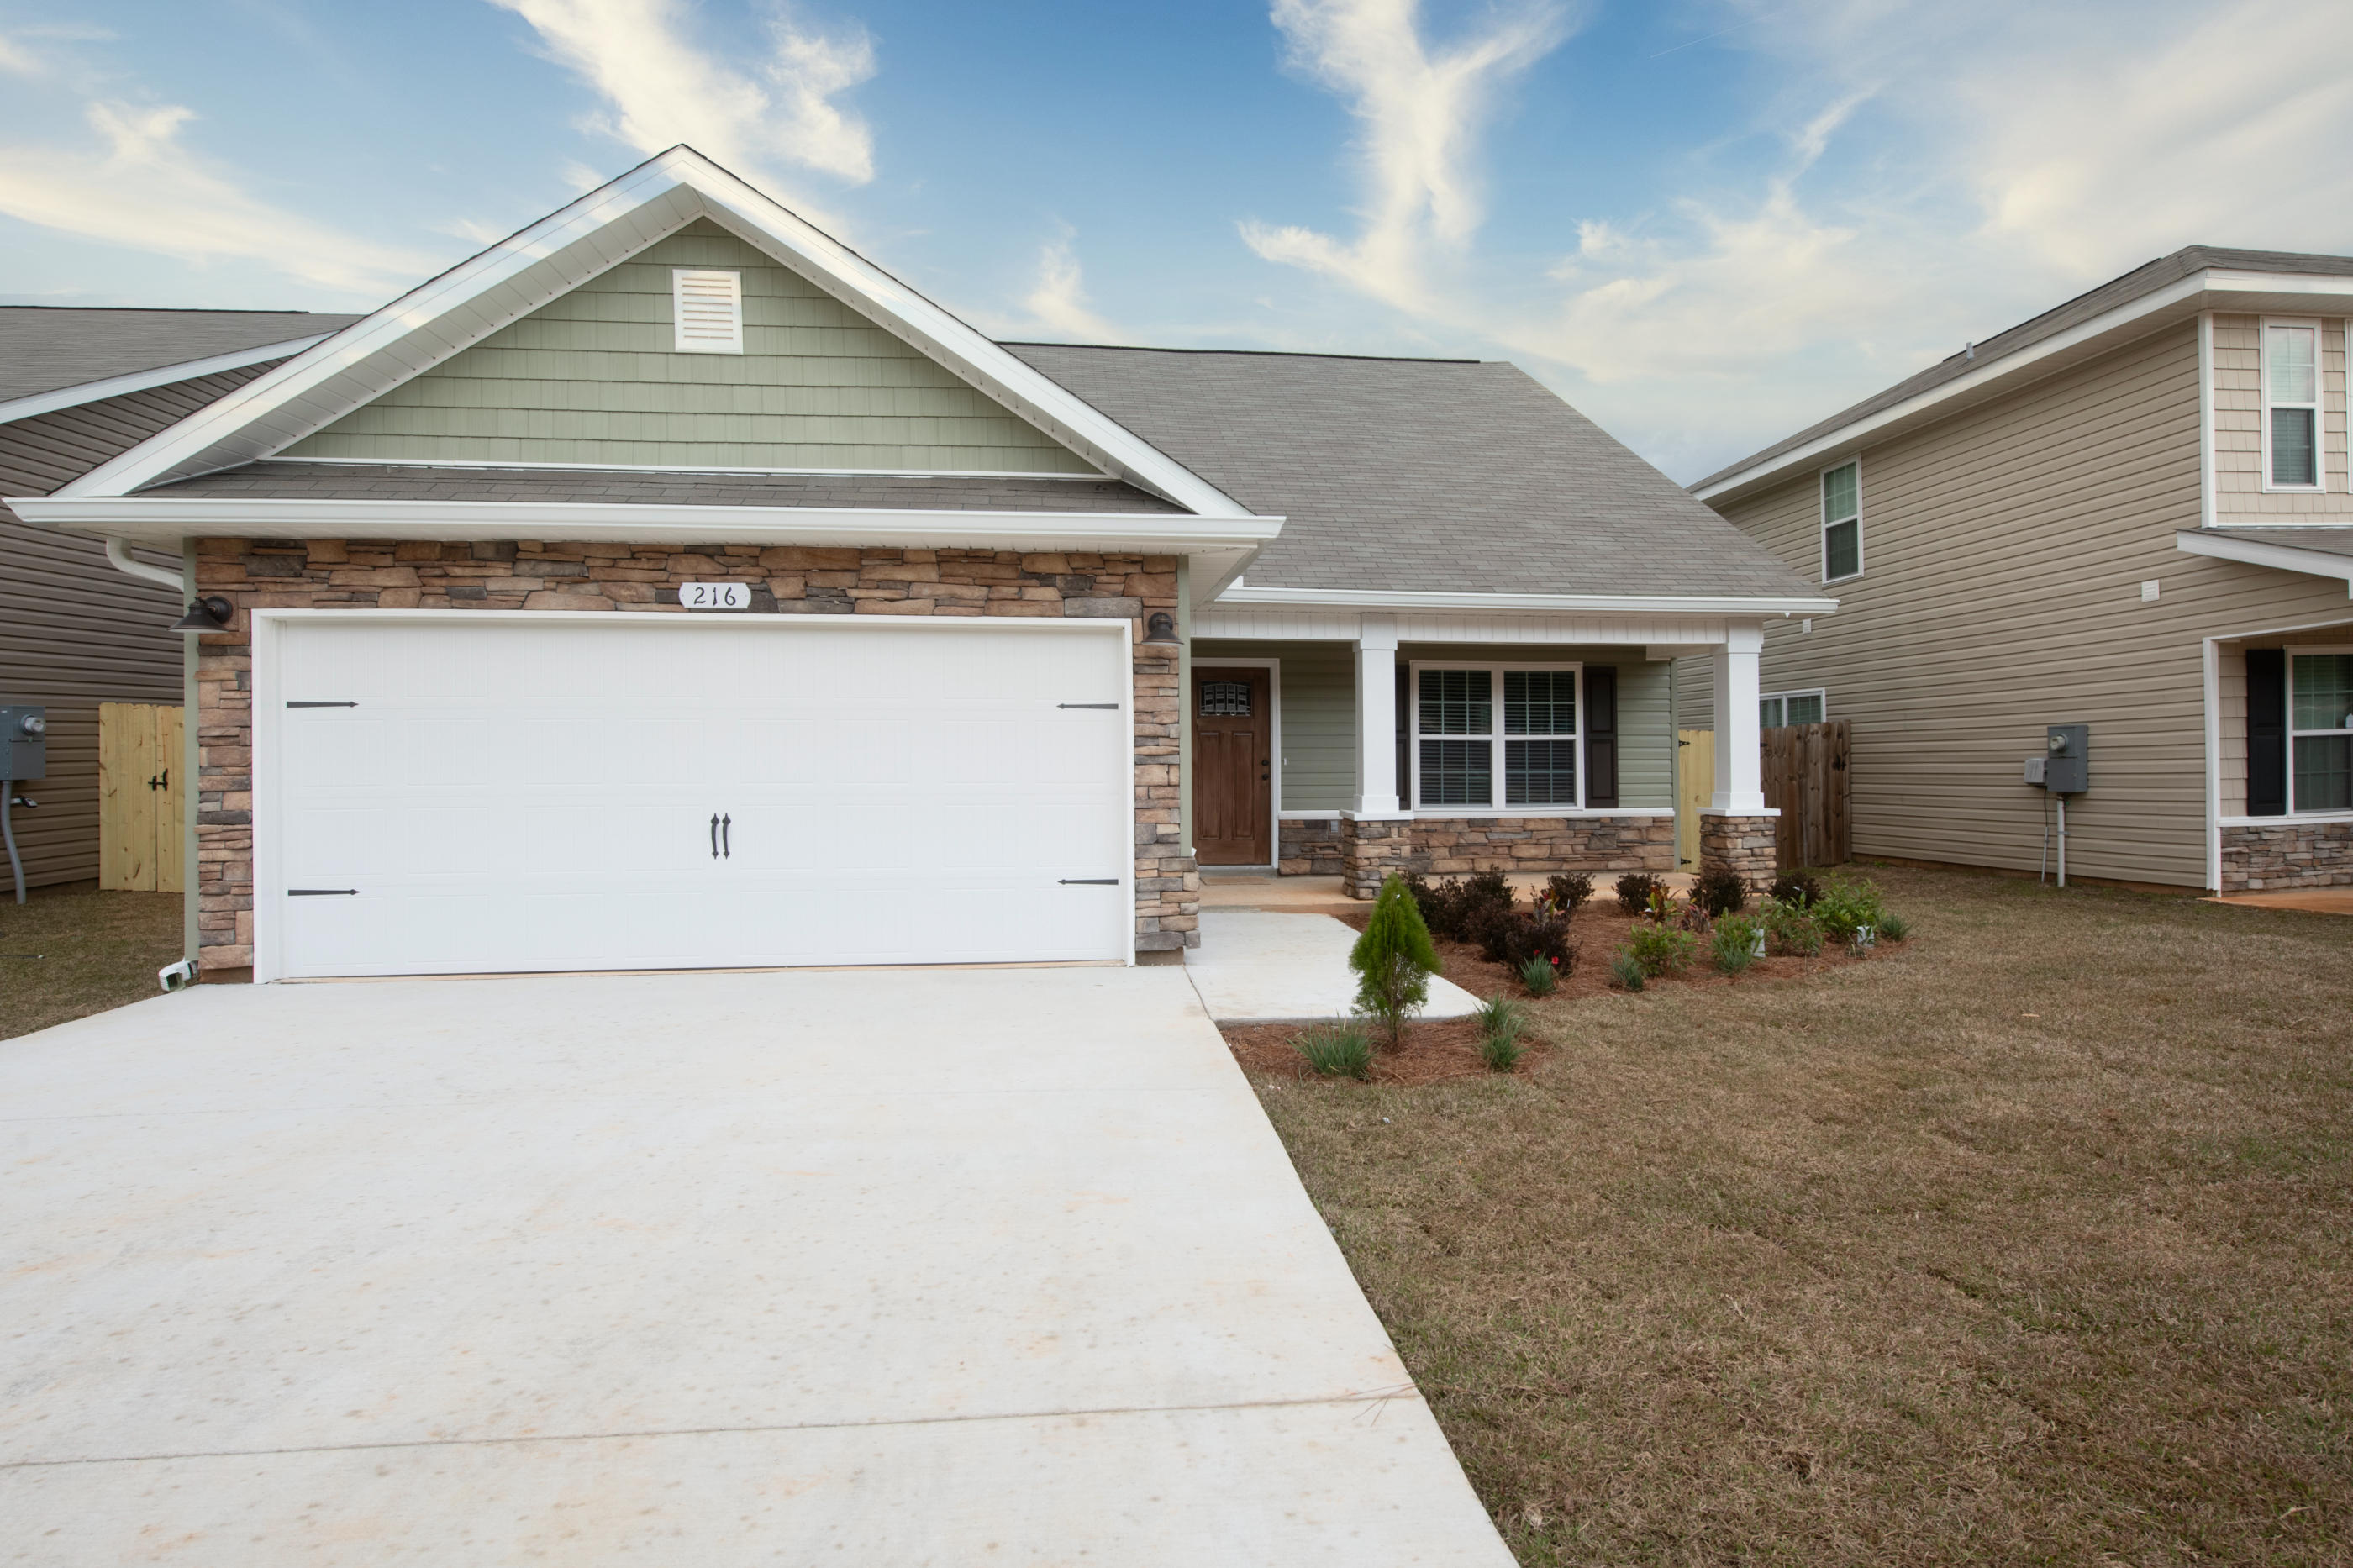 Photo of home for sale at 216 Wainwright, Crestview FL